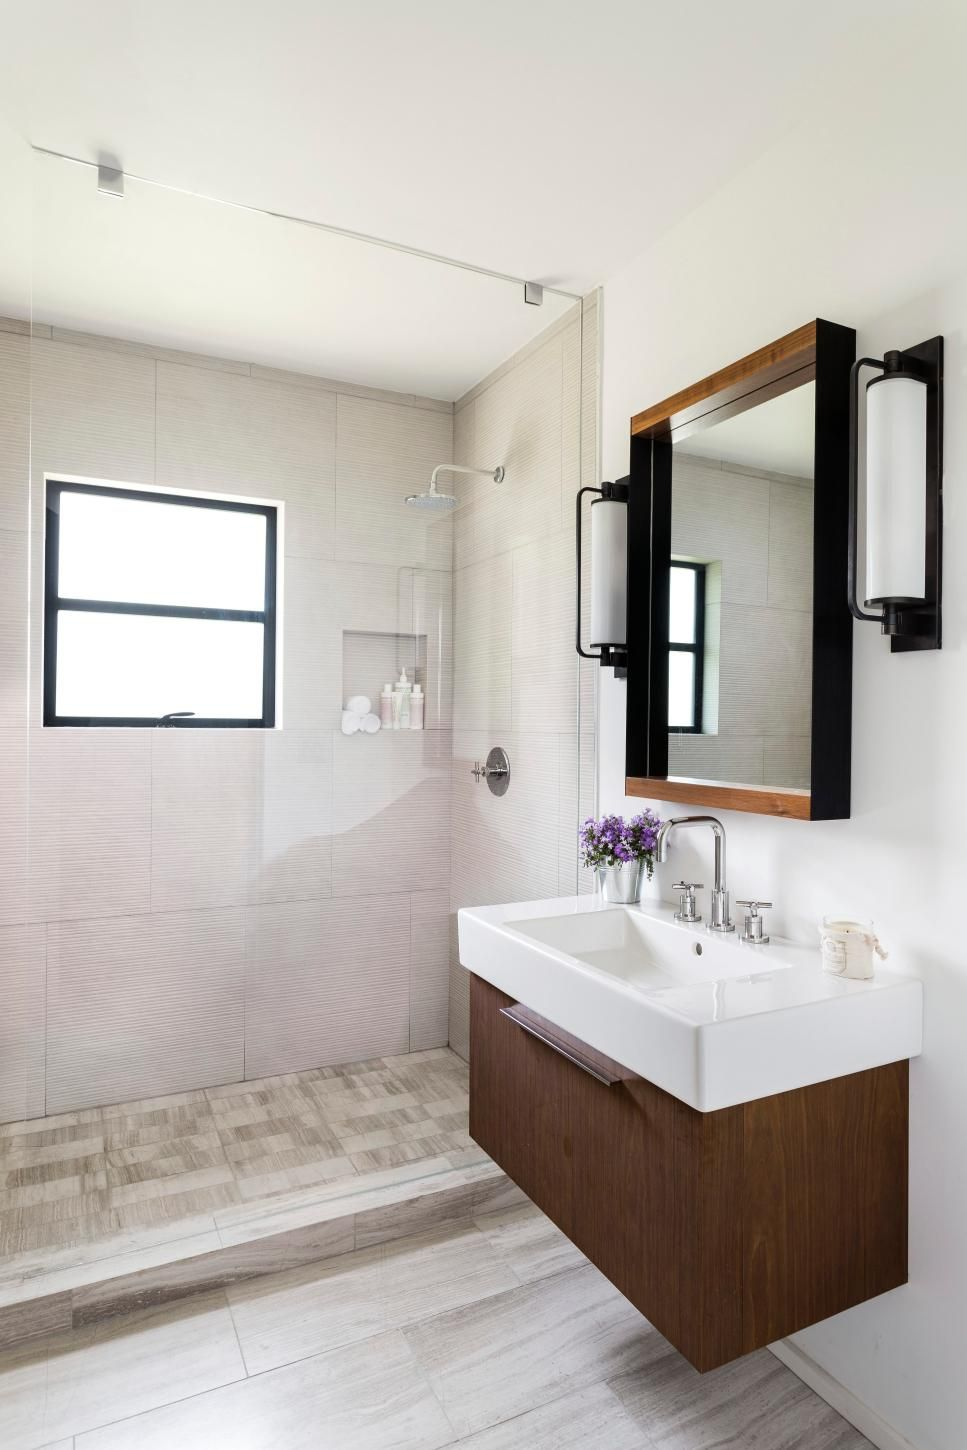 before-and-after bathroom remodels on a budget | swinging doors